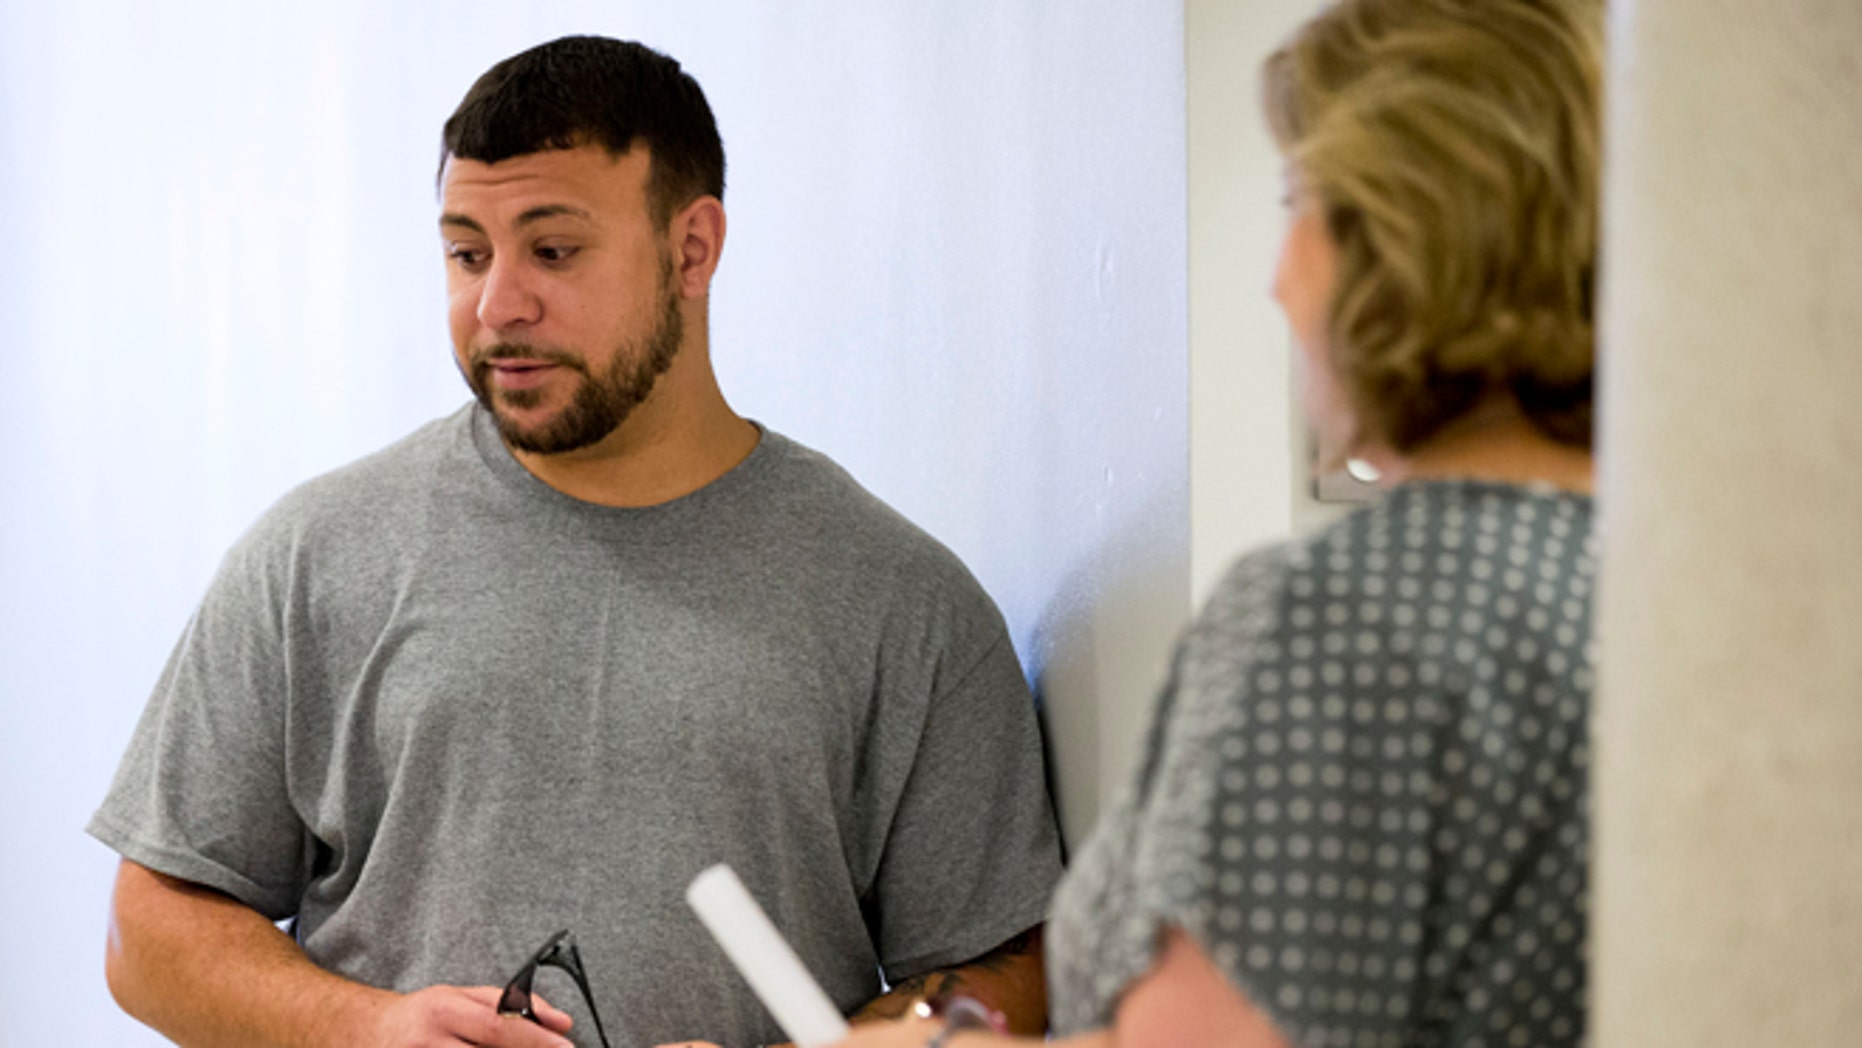 Aug. 21, 2013: This photo shows Iraqi war veteran Paul Piscicelli, left, speaking with Peg Maynard, veterans justice outreach specialist for the Department of Veterans Affairs, at the justice center in Philadelphia.